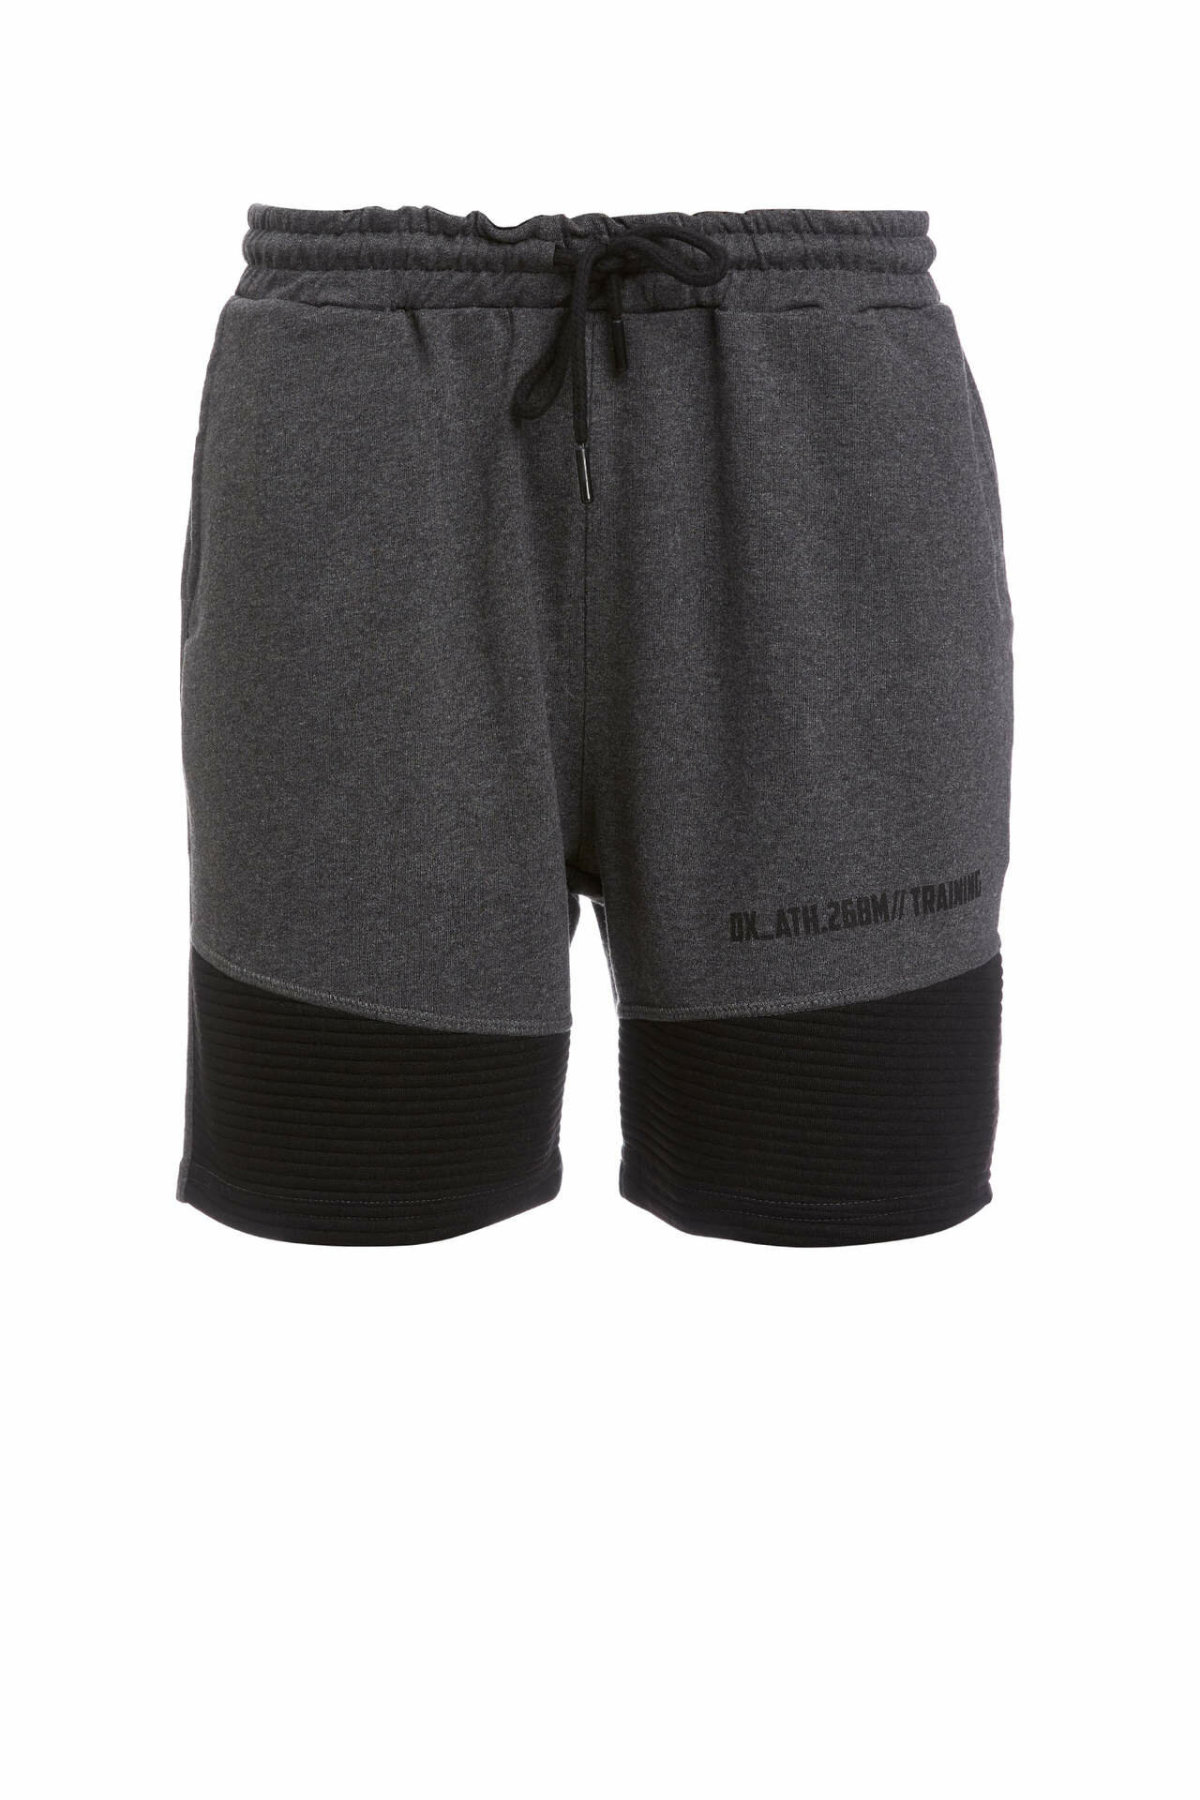 DeFacto Man's Casual Short Men's Dark Grey Short Bottoms Men's Summer Lace-up Shorts Men Short Pants-R2359AZ20SM